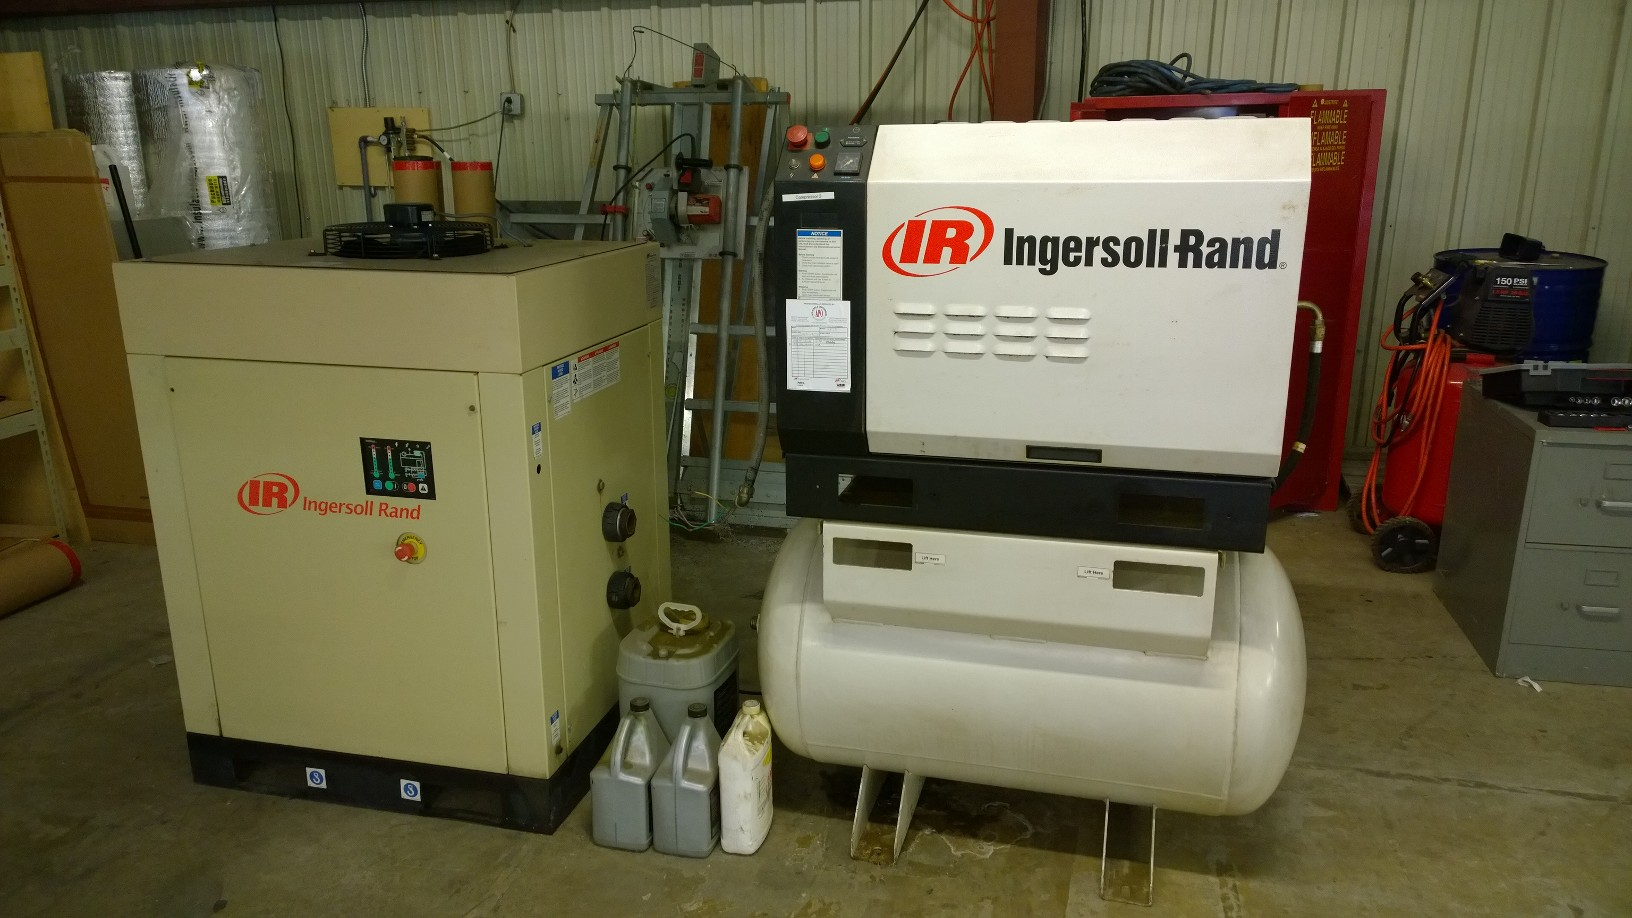 INGERSOLL RAND INDUSTRIAL SCREW COMPRESSOR Sold for $3,795